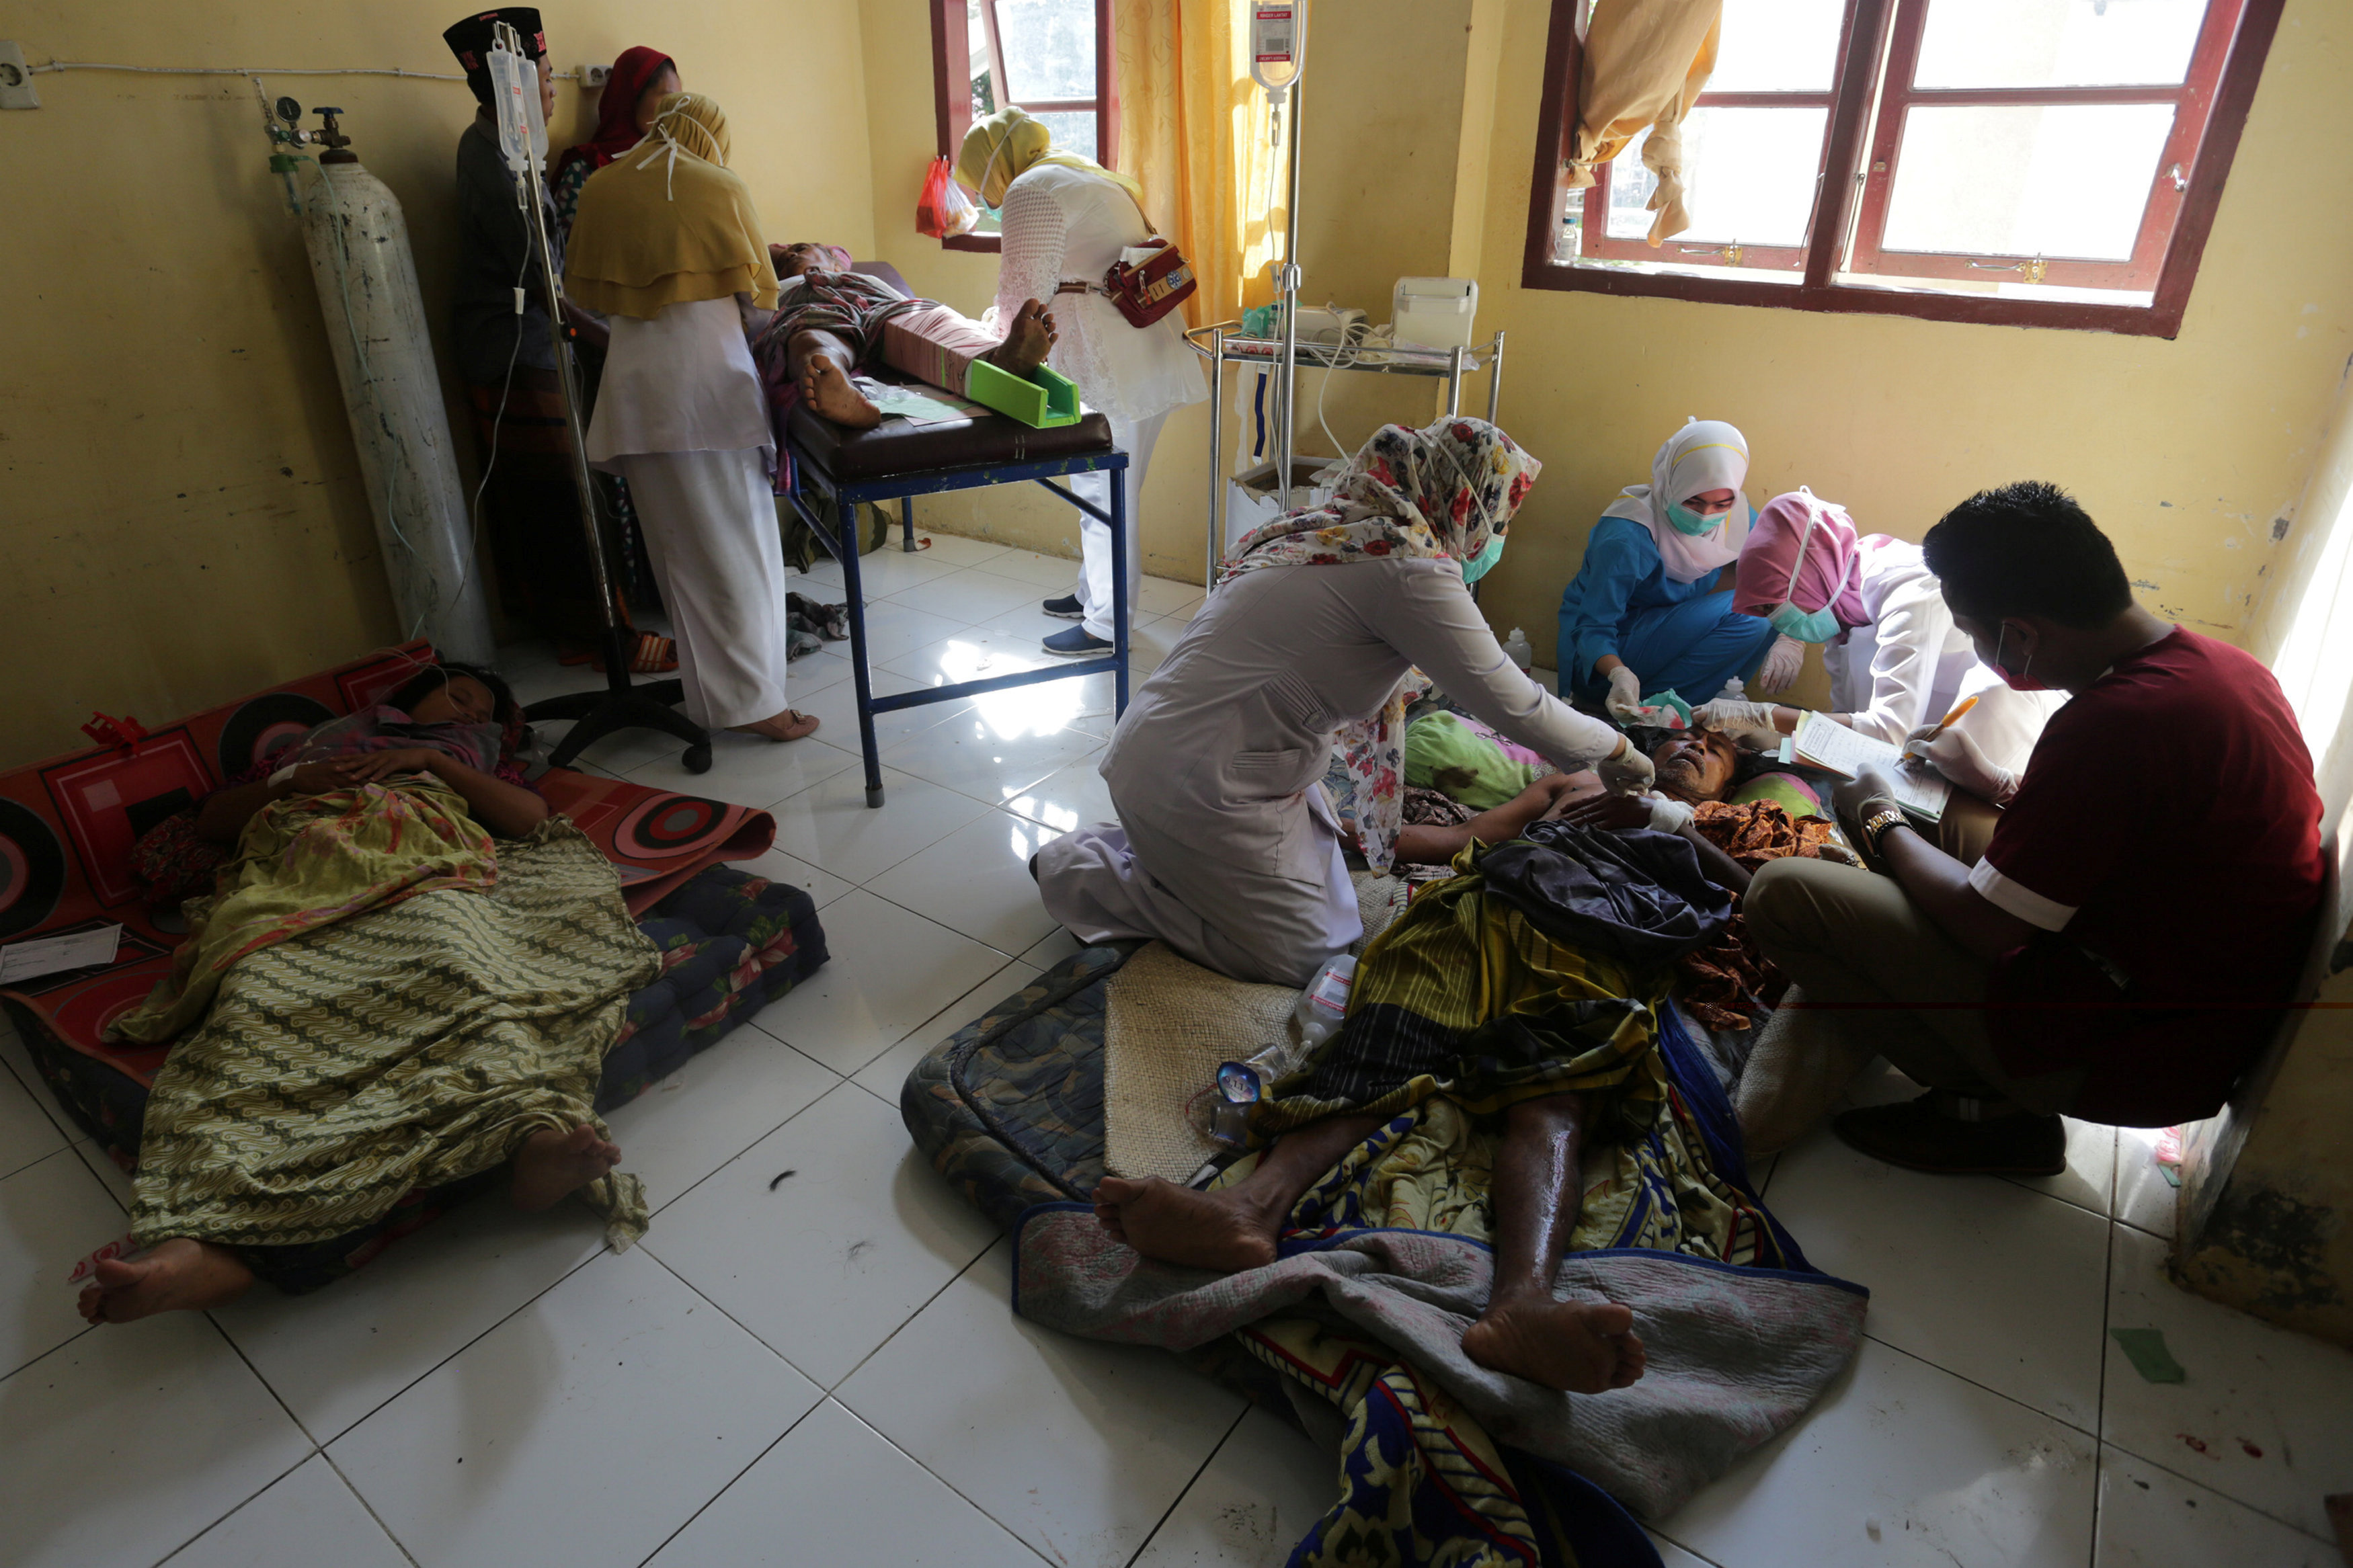 Injured people receive medical attention at a hospital following an earthquake in Sigli, Pidie regency, in the northern province of Aceh, Indonesia December 7, 2016 in this photo taken by Antara Foto. Antara Foto/Irwansyah Putra/via REUTERS